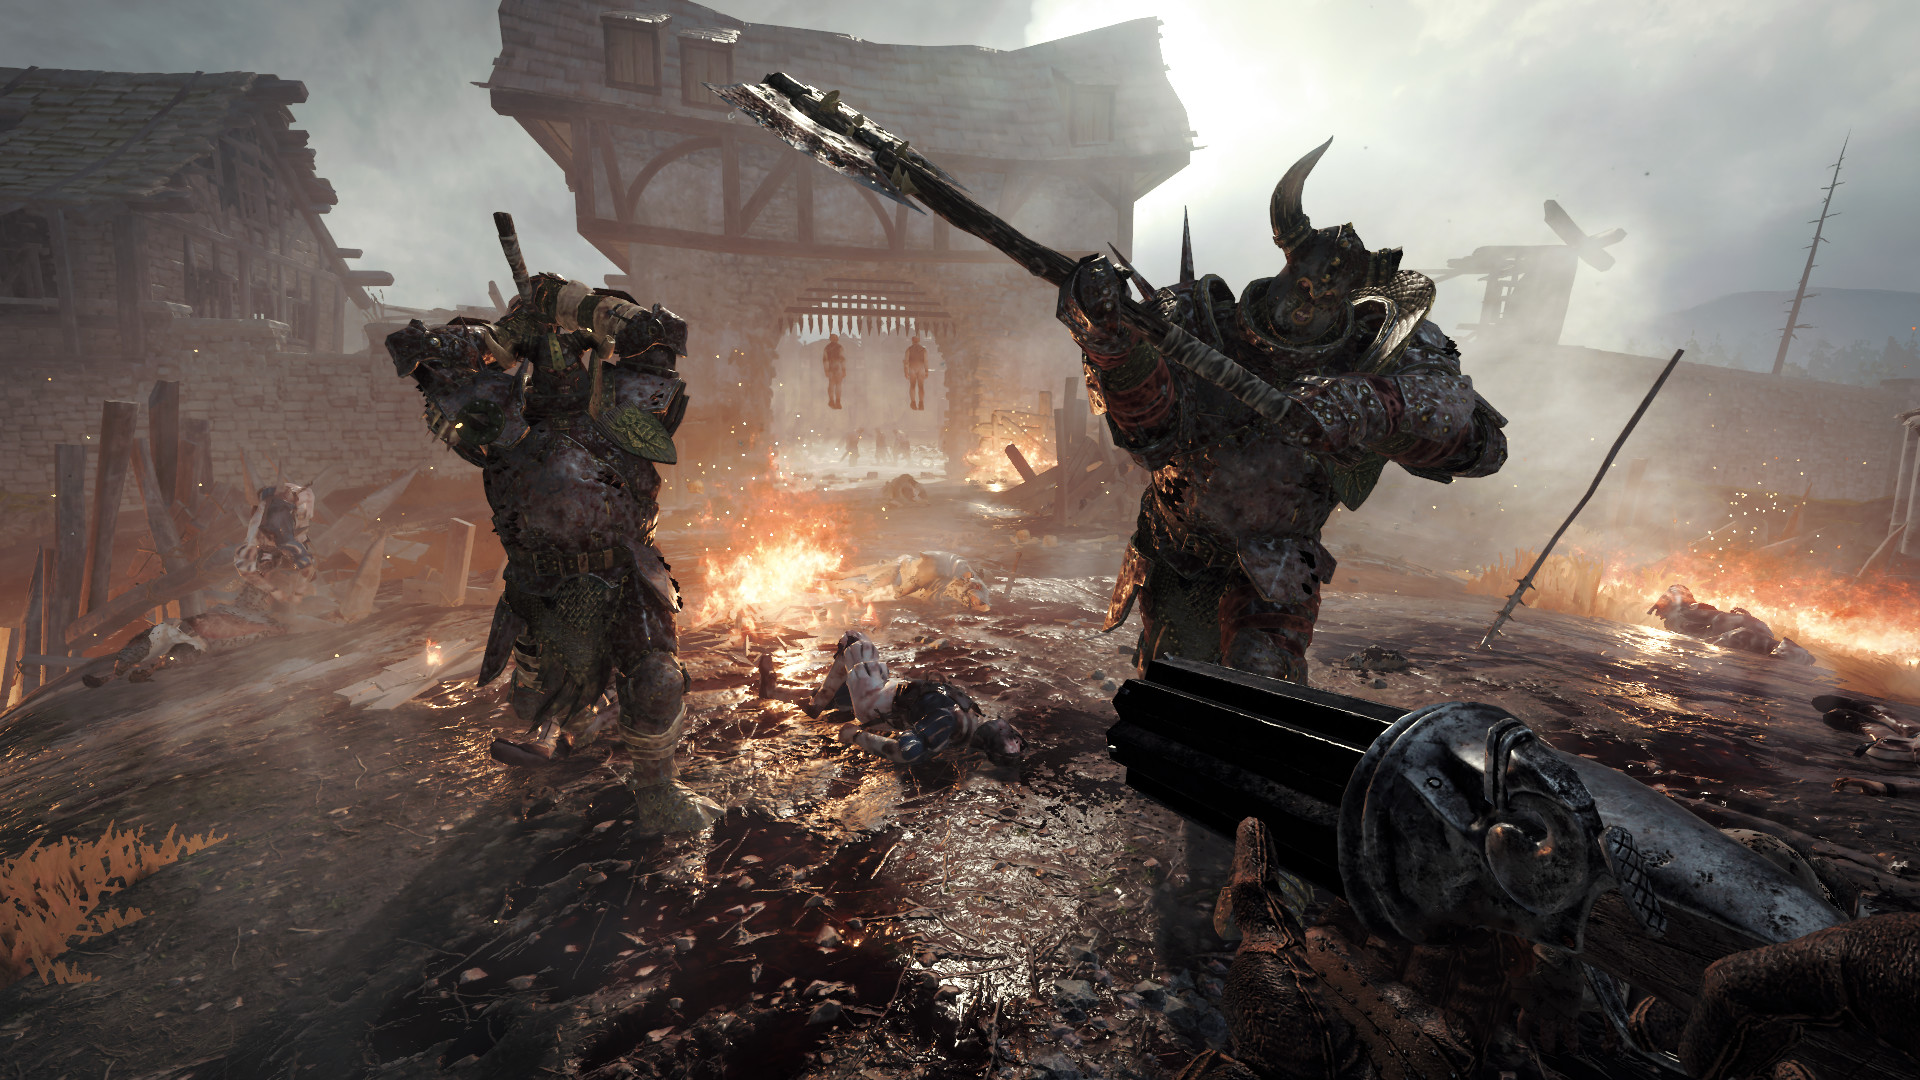 vermintide 2 matchmaking issuesdating without attraction